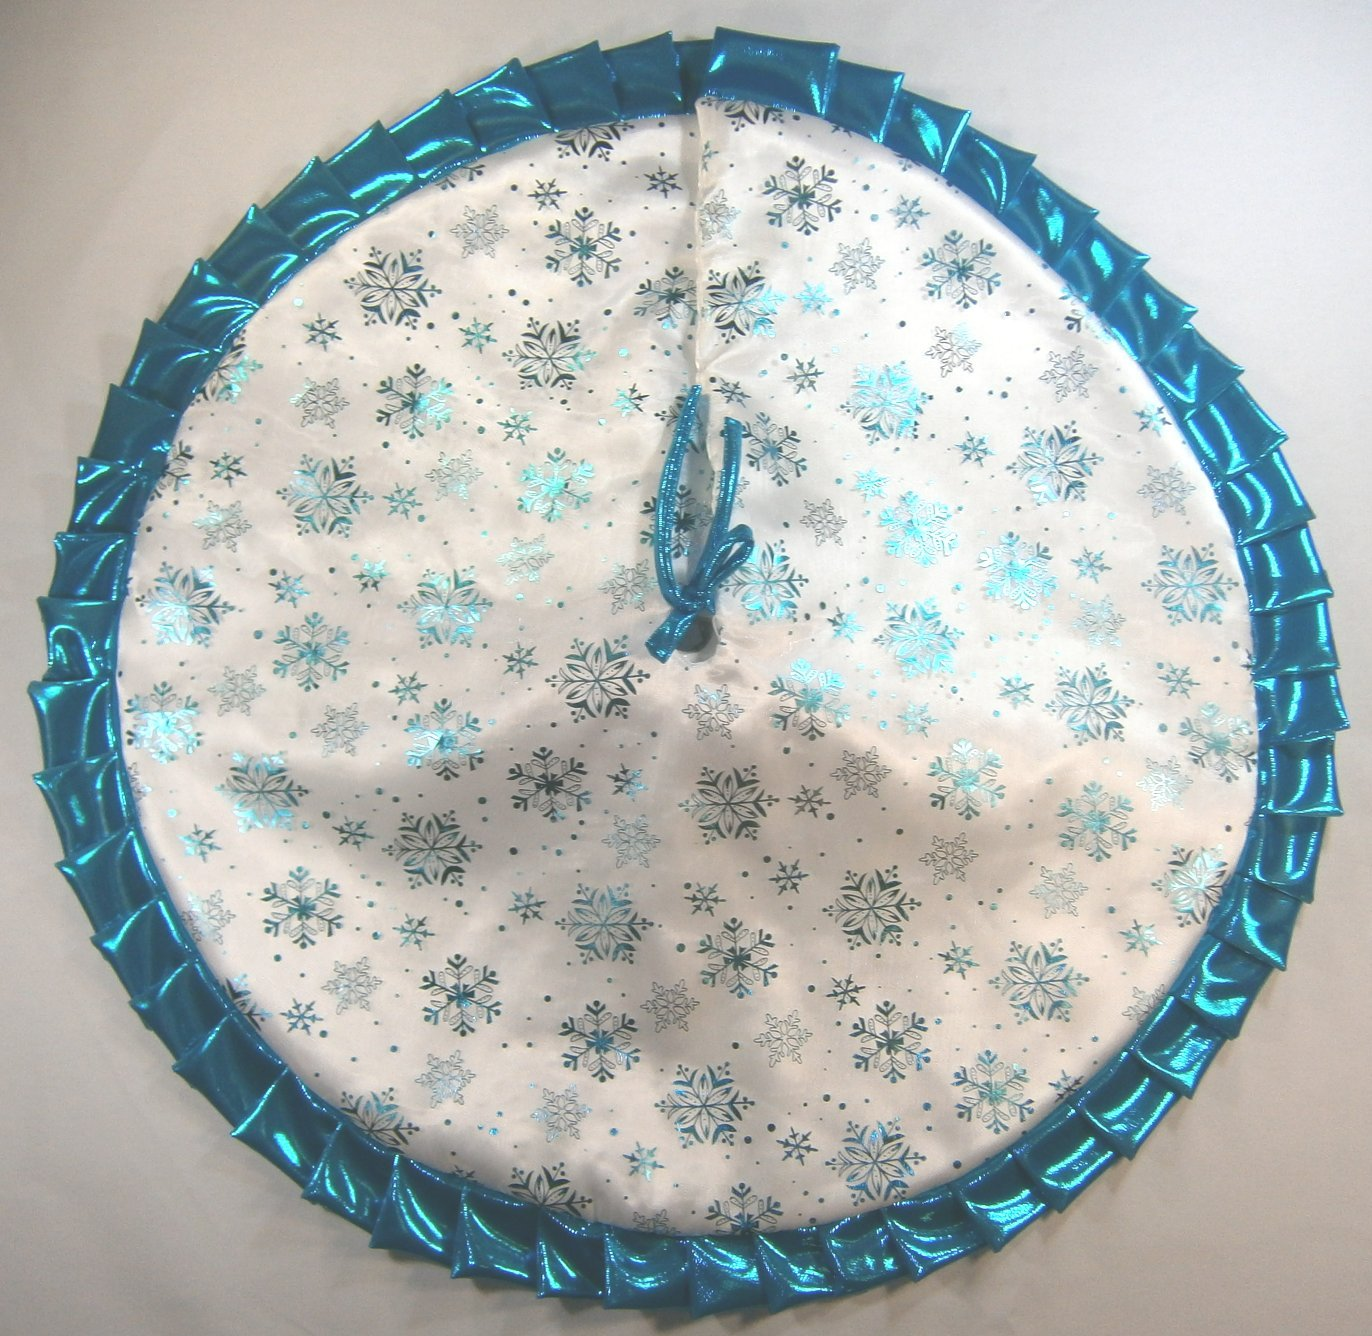 Small Christmas Tapered / Pencil Tree Skirt, 32'', Turquoise Snowflakes